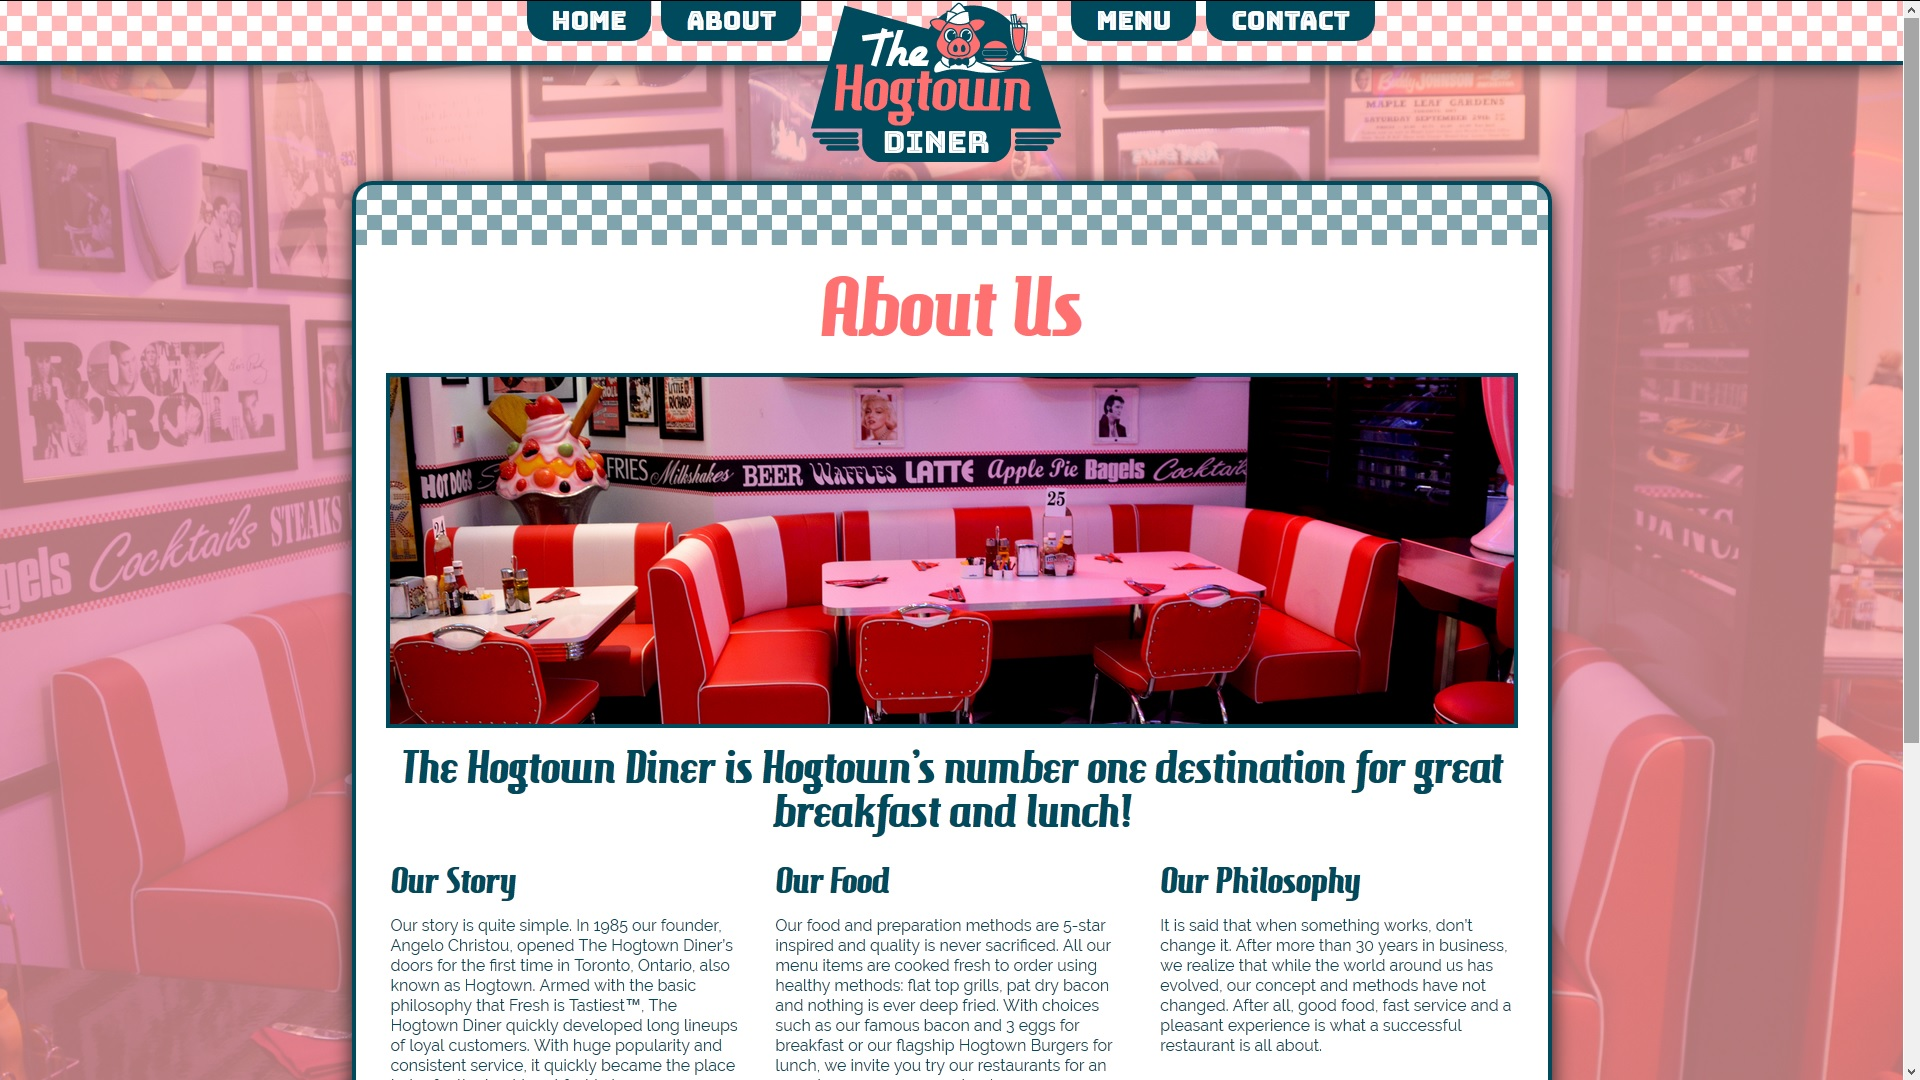 The Hogtown Diner